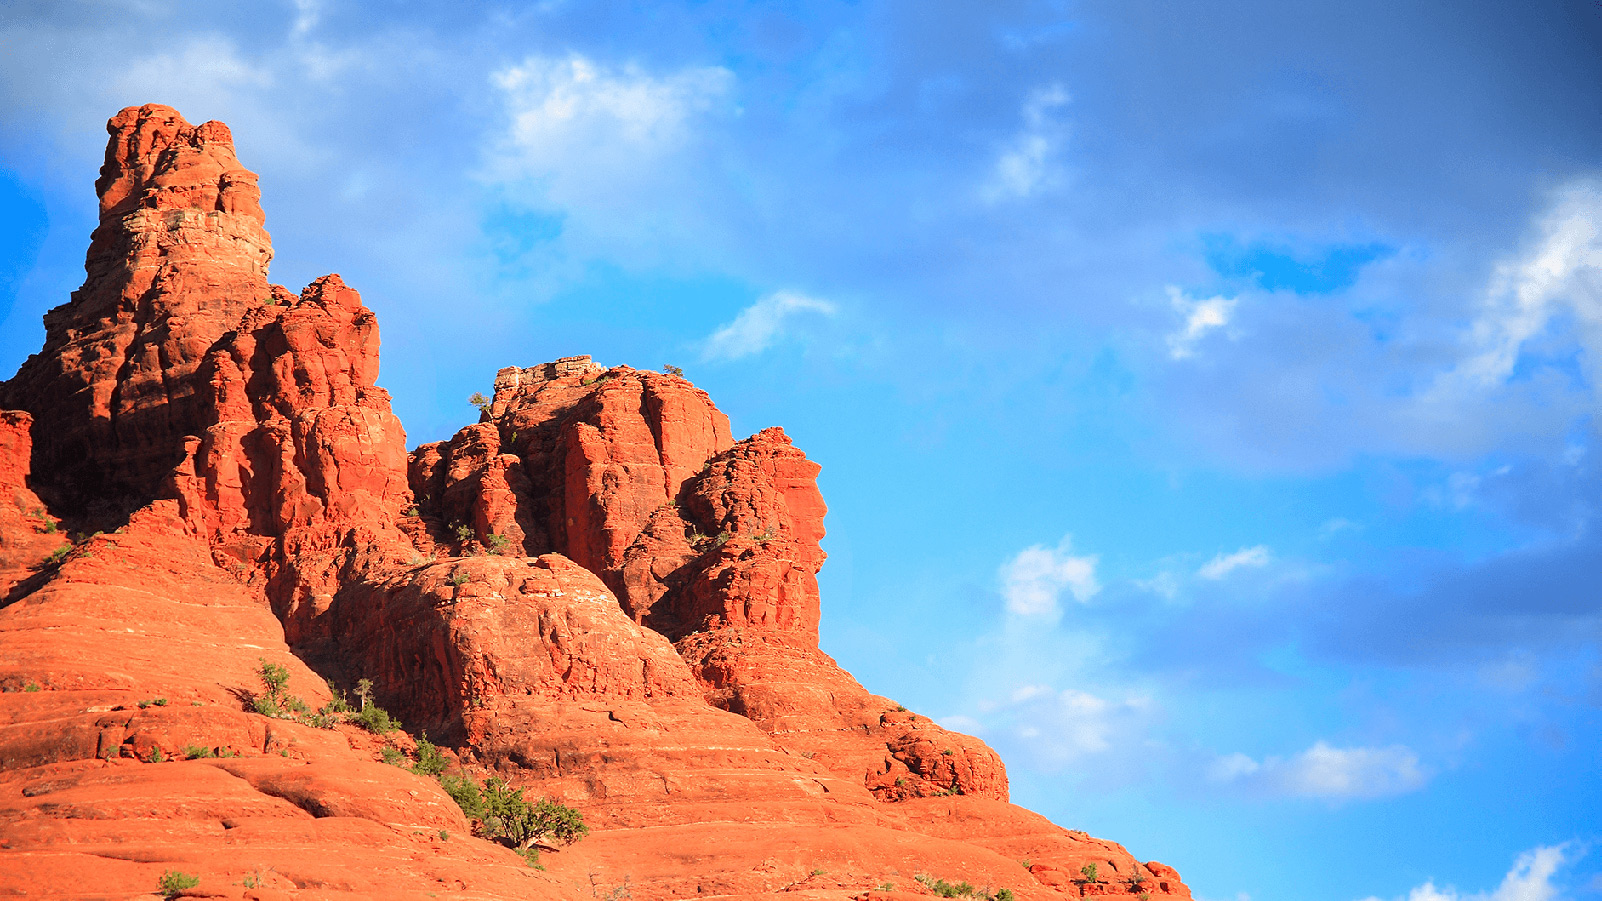 Arizona red rocks on a sunny day with blue sky.